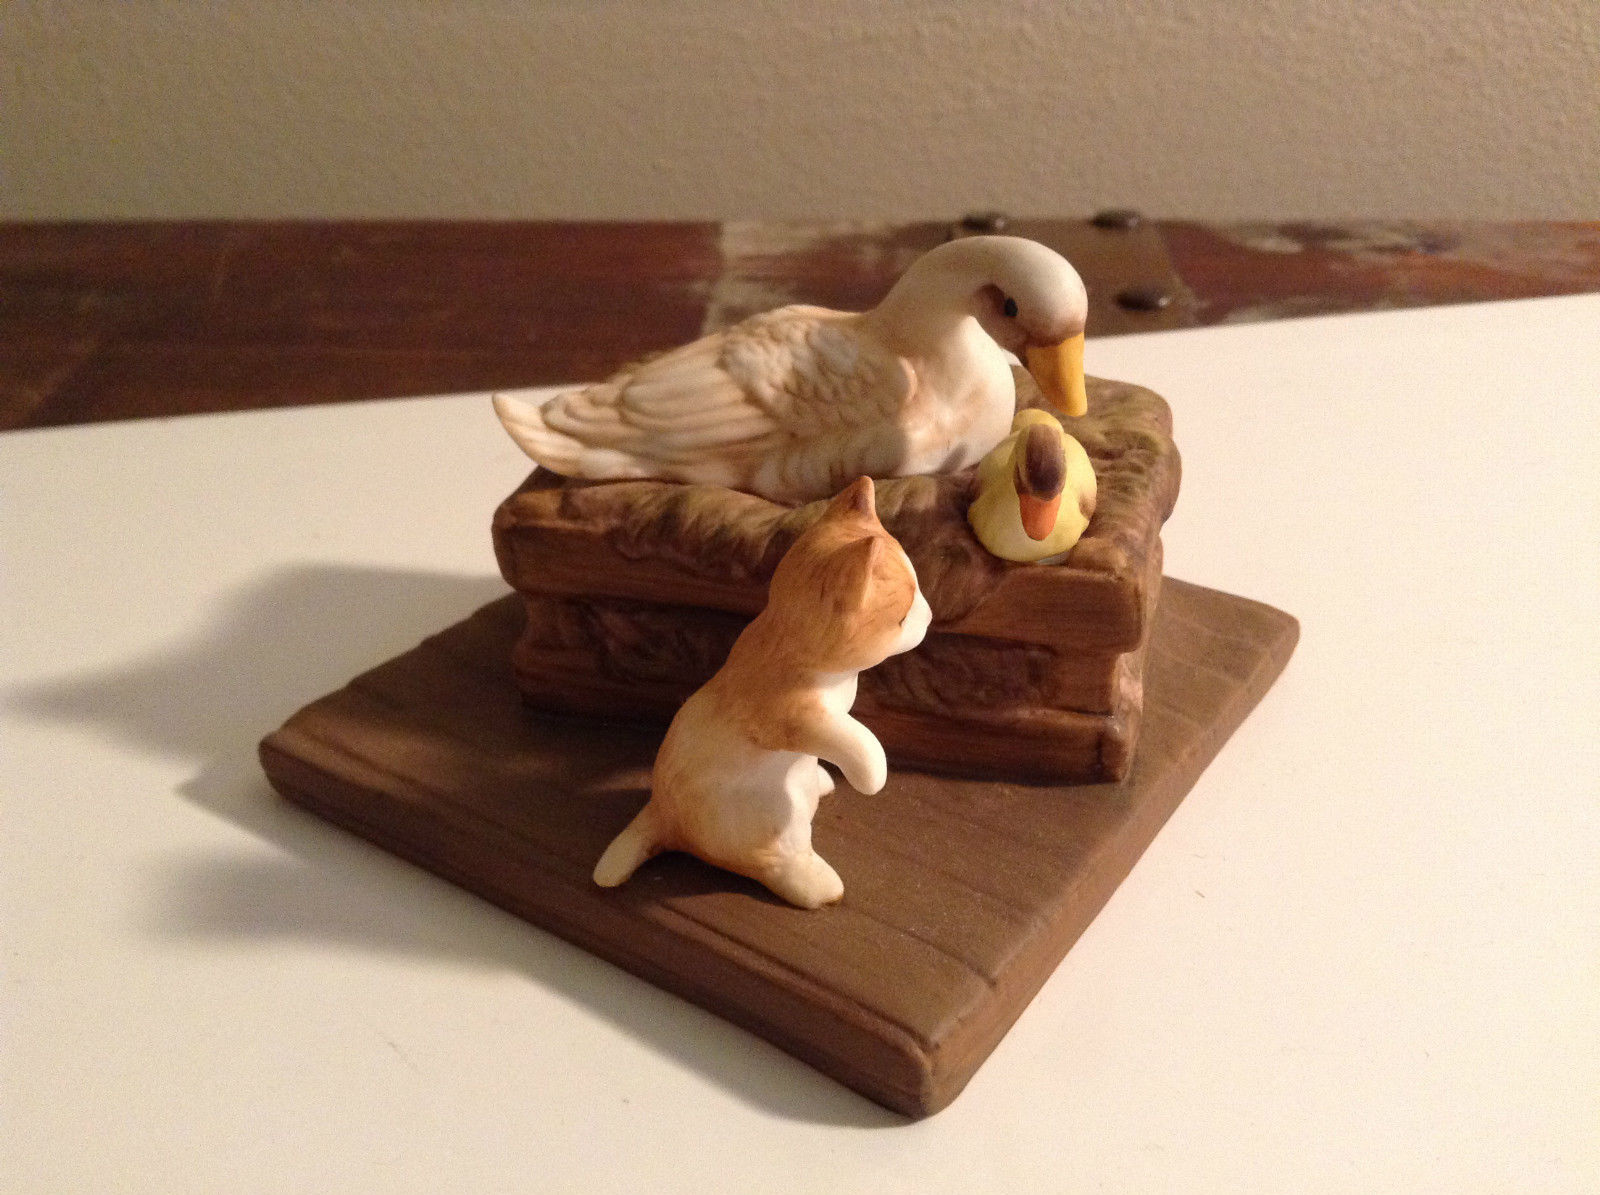 Primary image for White Duck with Yellow Baby Chick and Brown Kitten Figurine Display Piece